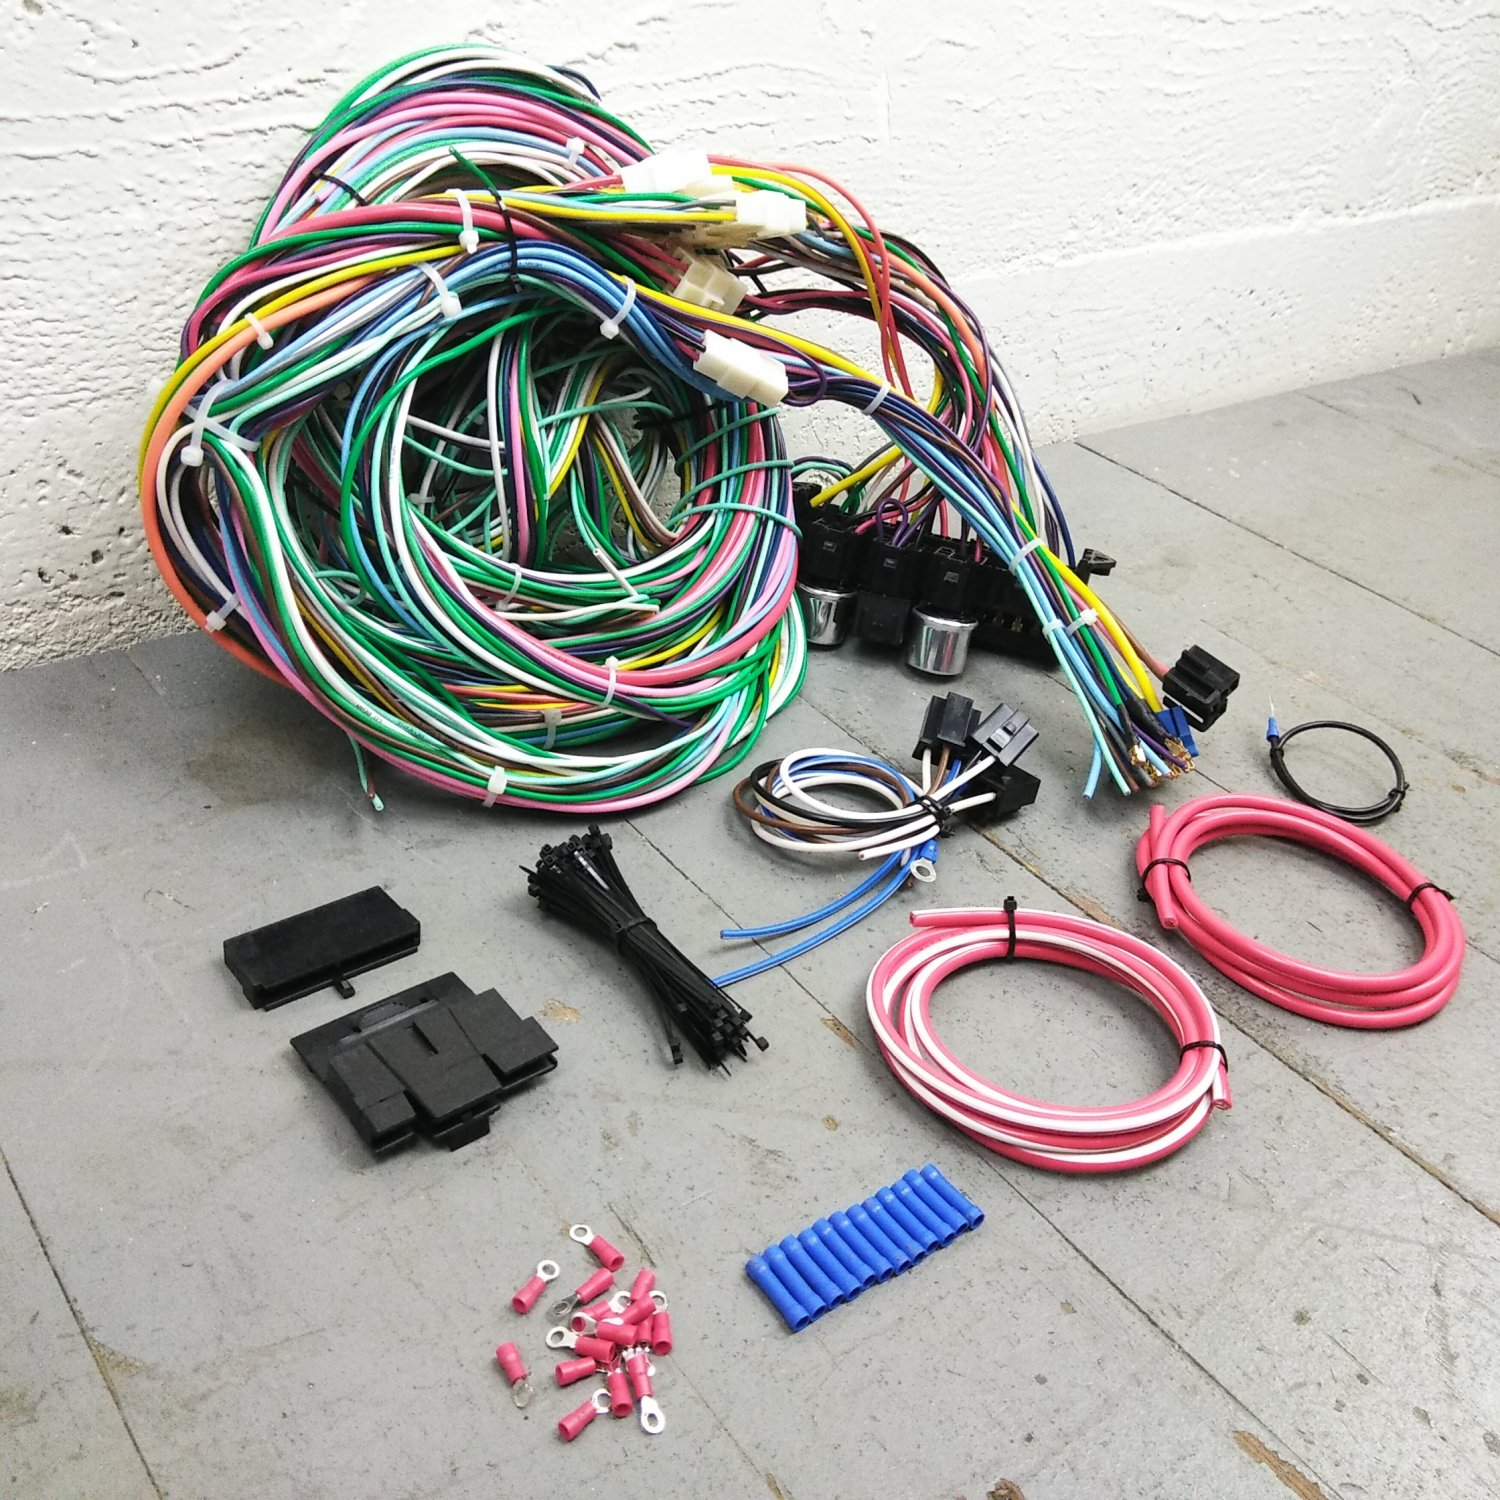 hight resolution of 1968 1974 plymouth roadrunner wire harness upgrade kit fits painless complete bar product description c